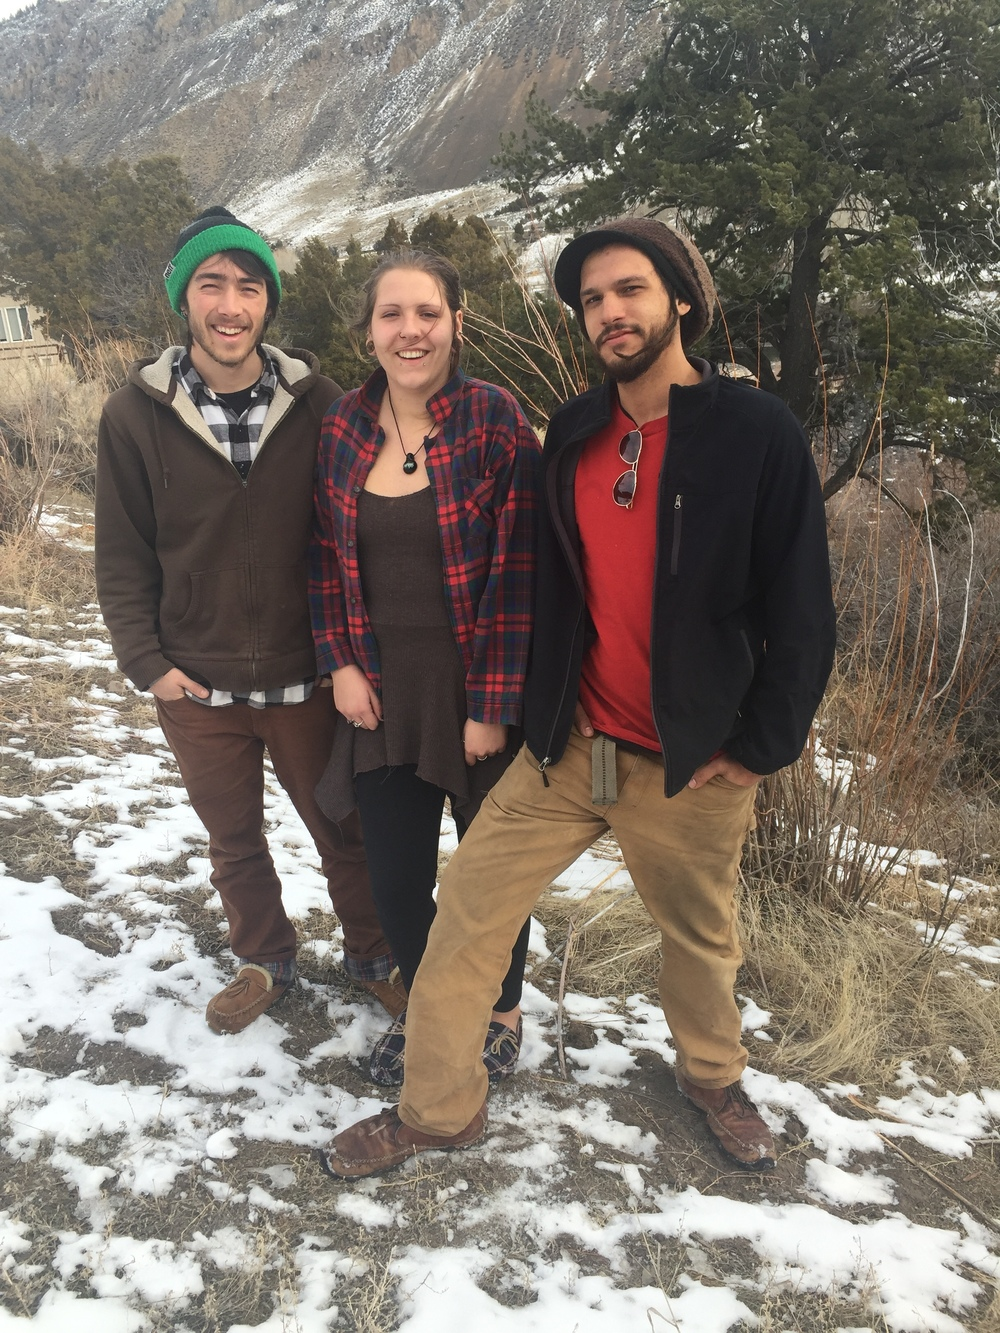 The Buffalo Field Campaign has been advocating for wild bison since 1995, when these volunteers -- Oliver, Amanda and Sam -- were toddlers.